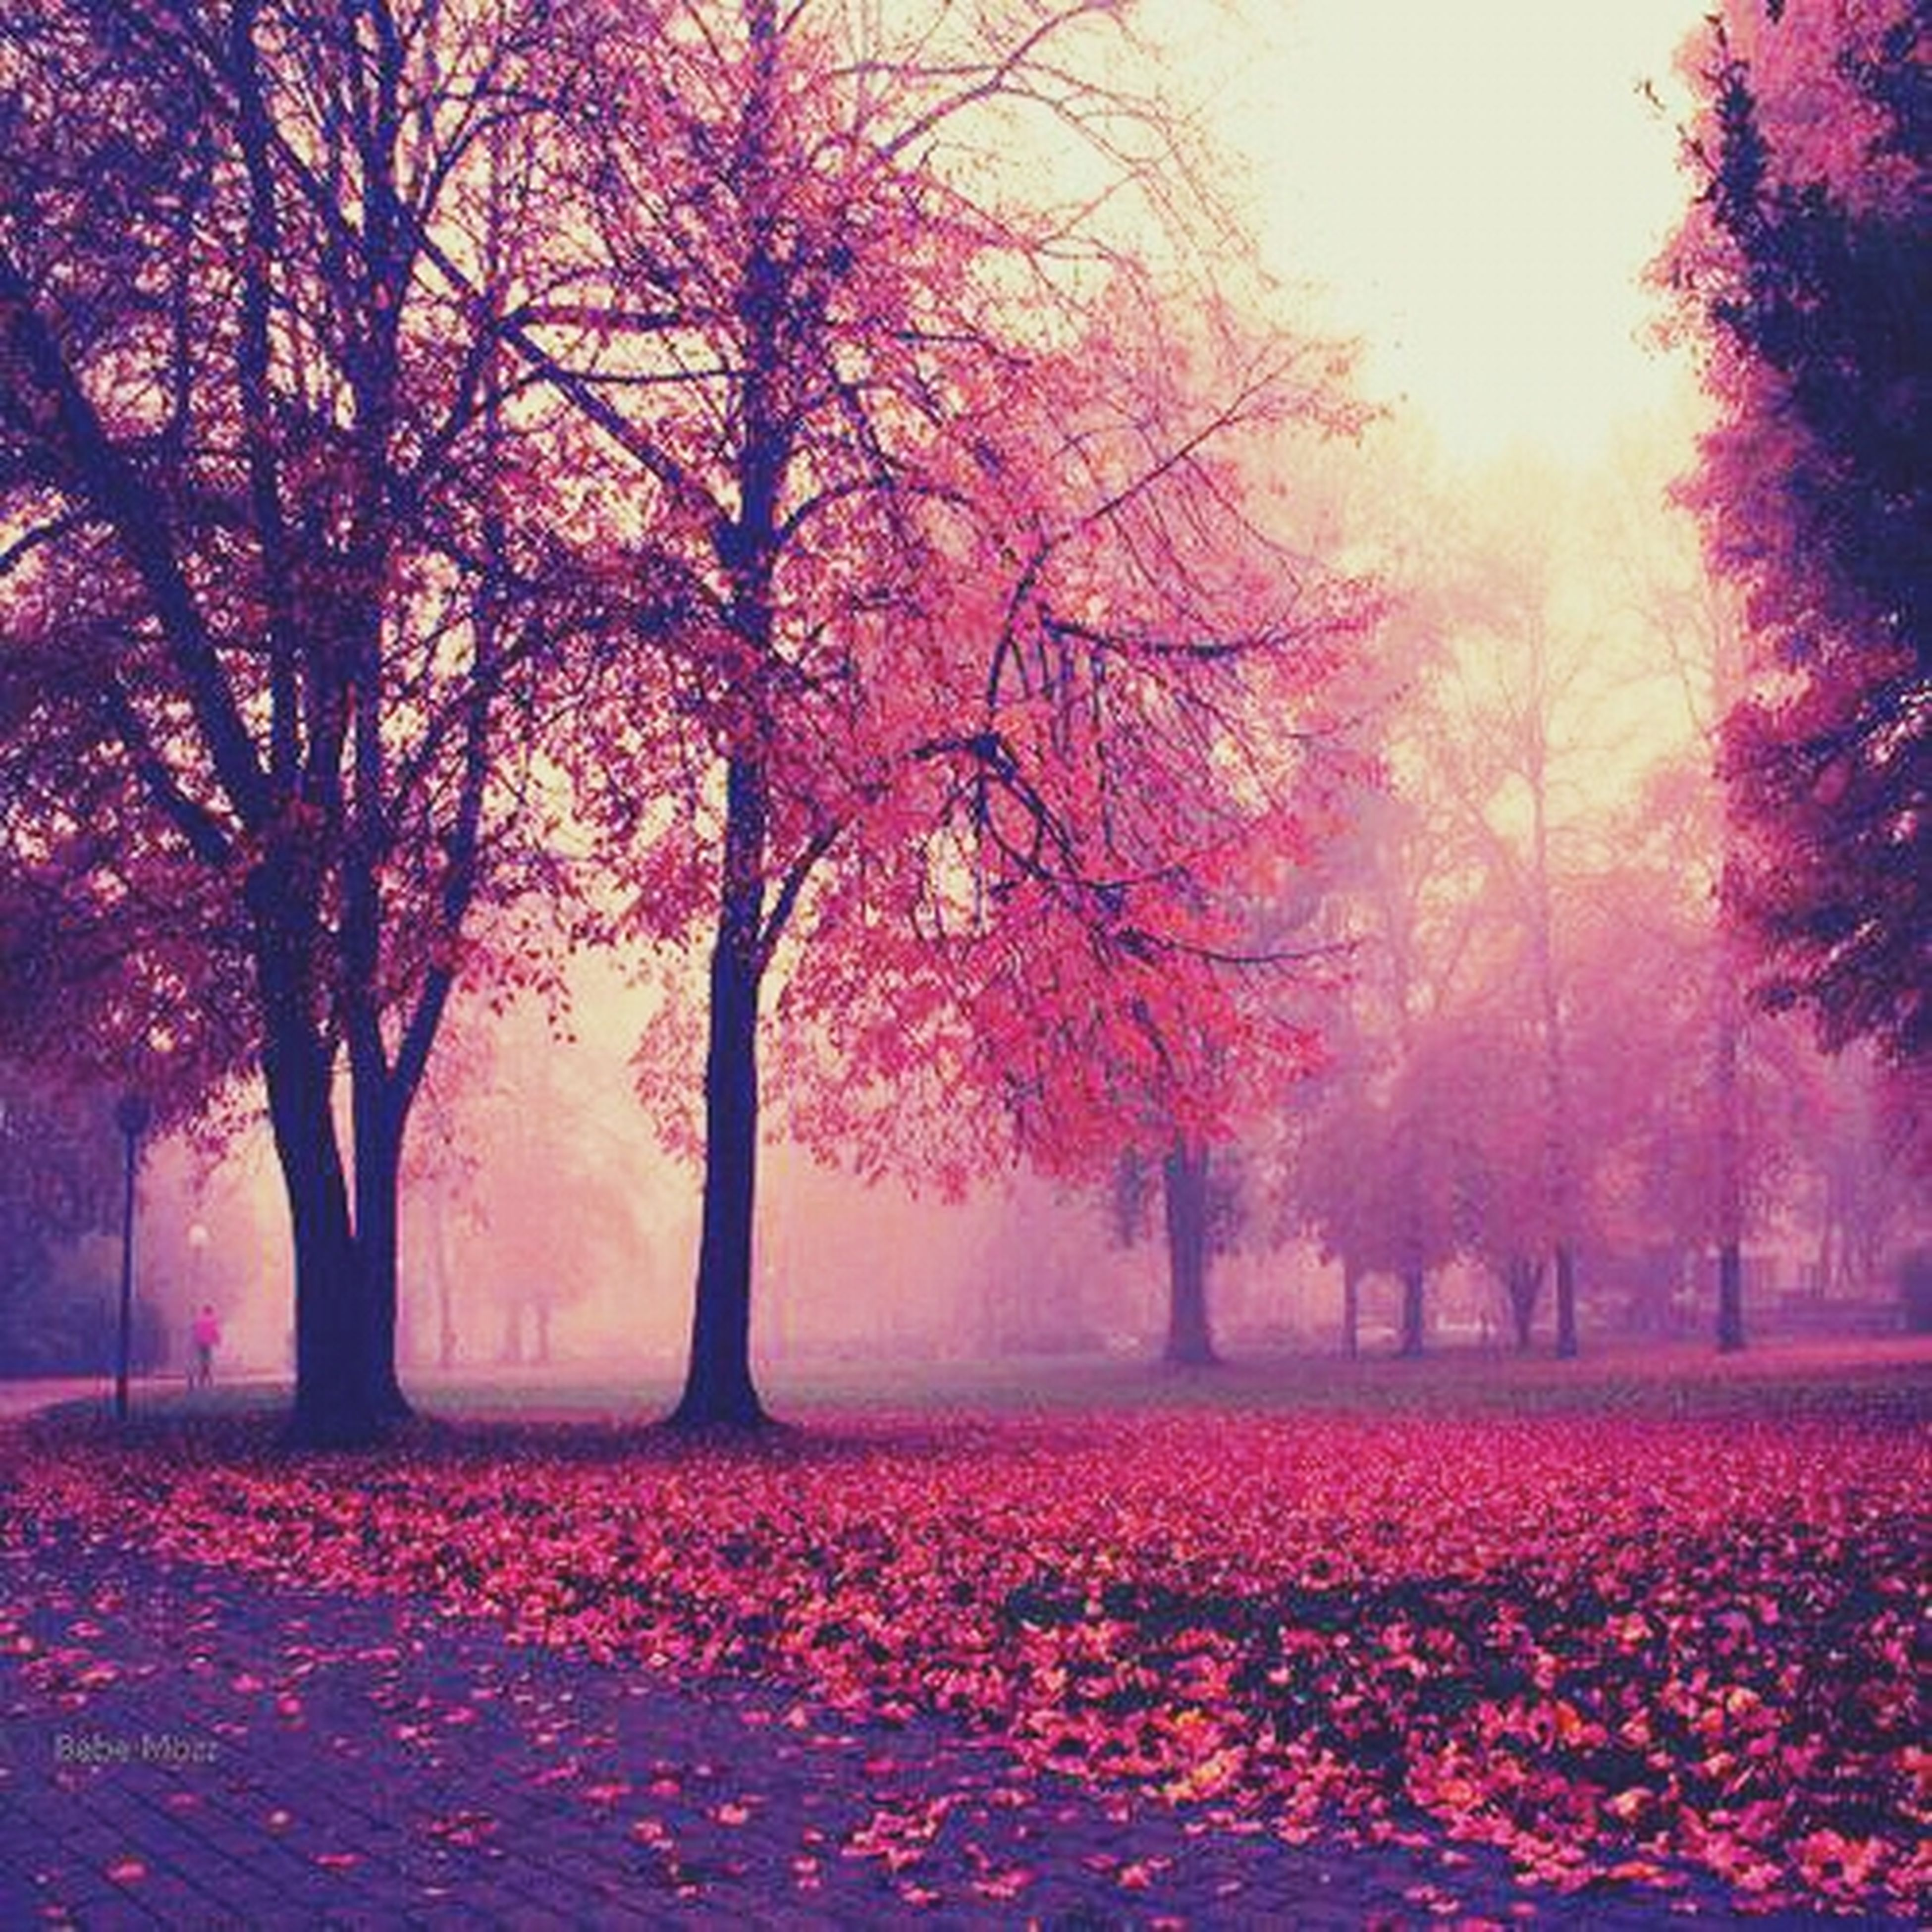 tree, beauty in nature, nature, pink color, tranquility, tranquil scene, growth, scenics, branch, park - man made space, season, flower, landscape, autumn, field, bare tree, outdoors, red, park, change